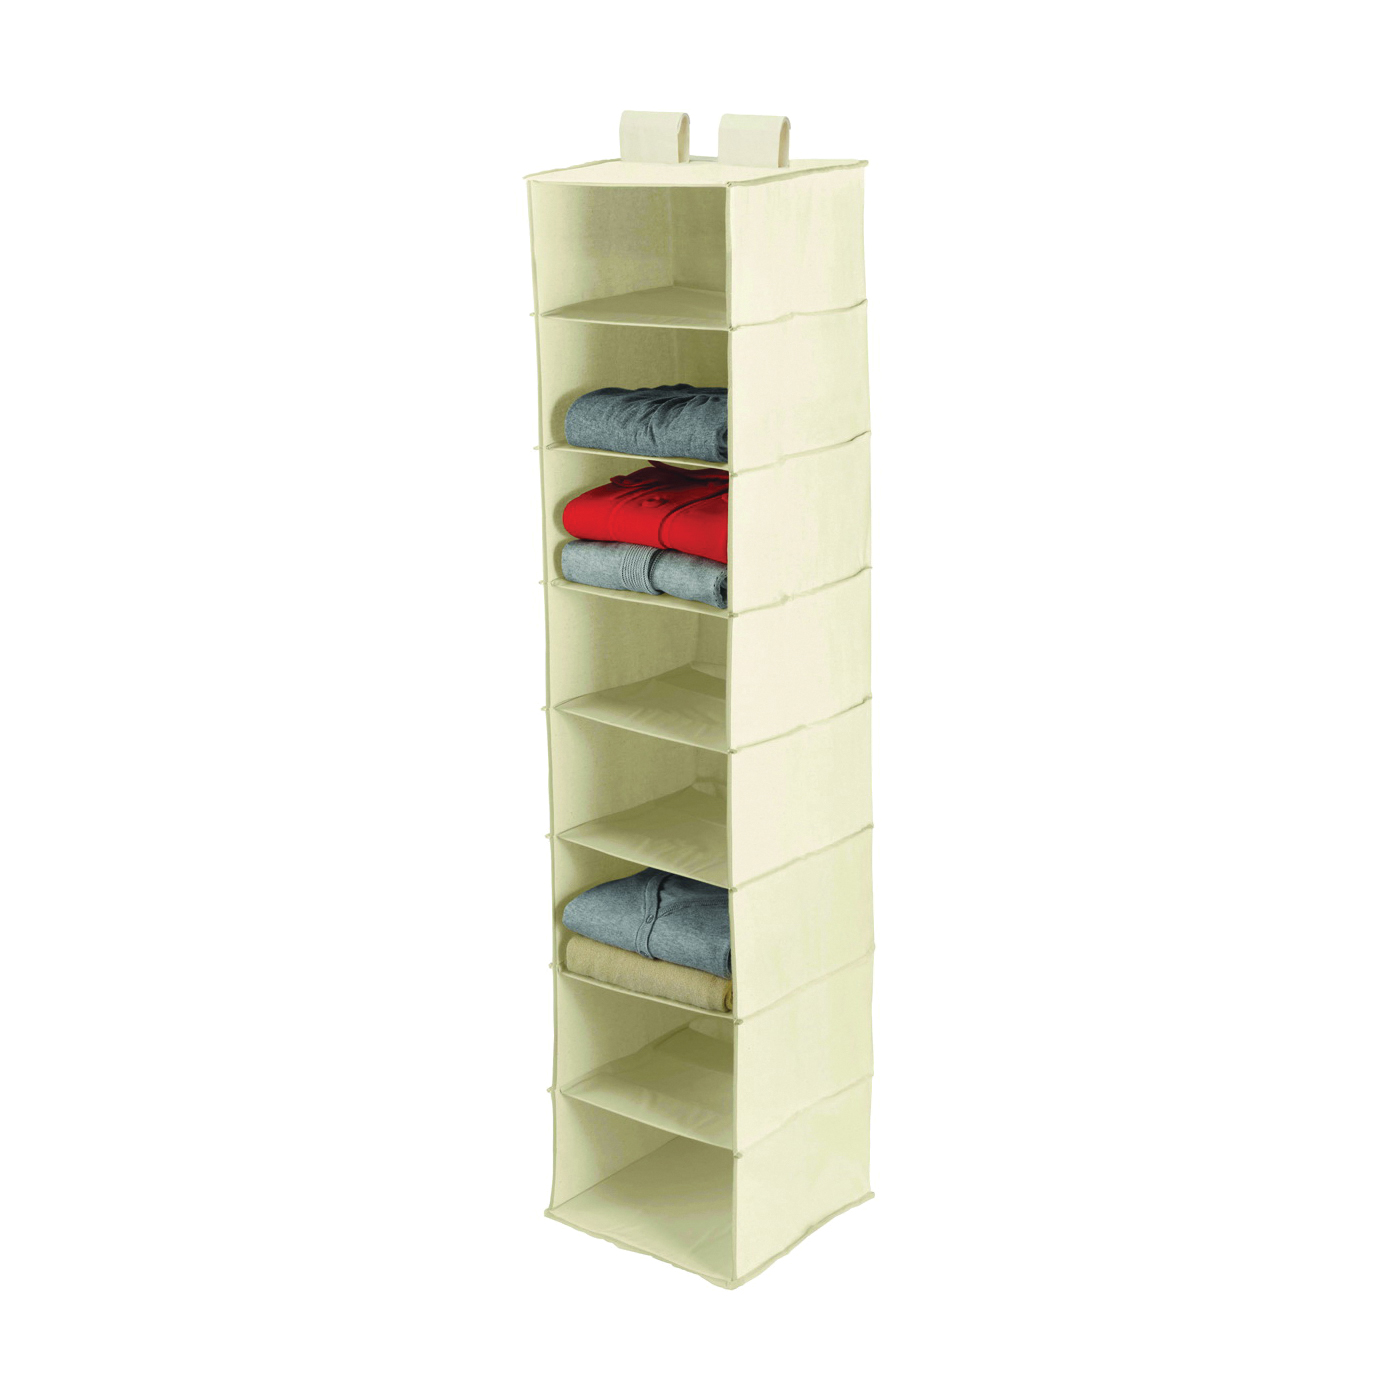 Picture of Honey-Can-Do SFT-01253 Closet Organizer, 12 in W, 54 in H, 8-Shelf, Canvas, Beige